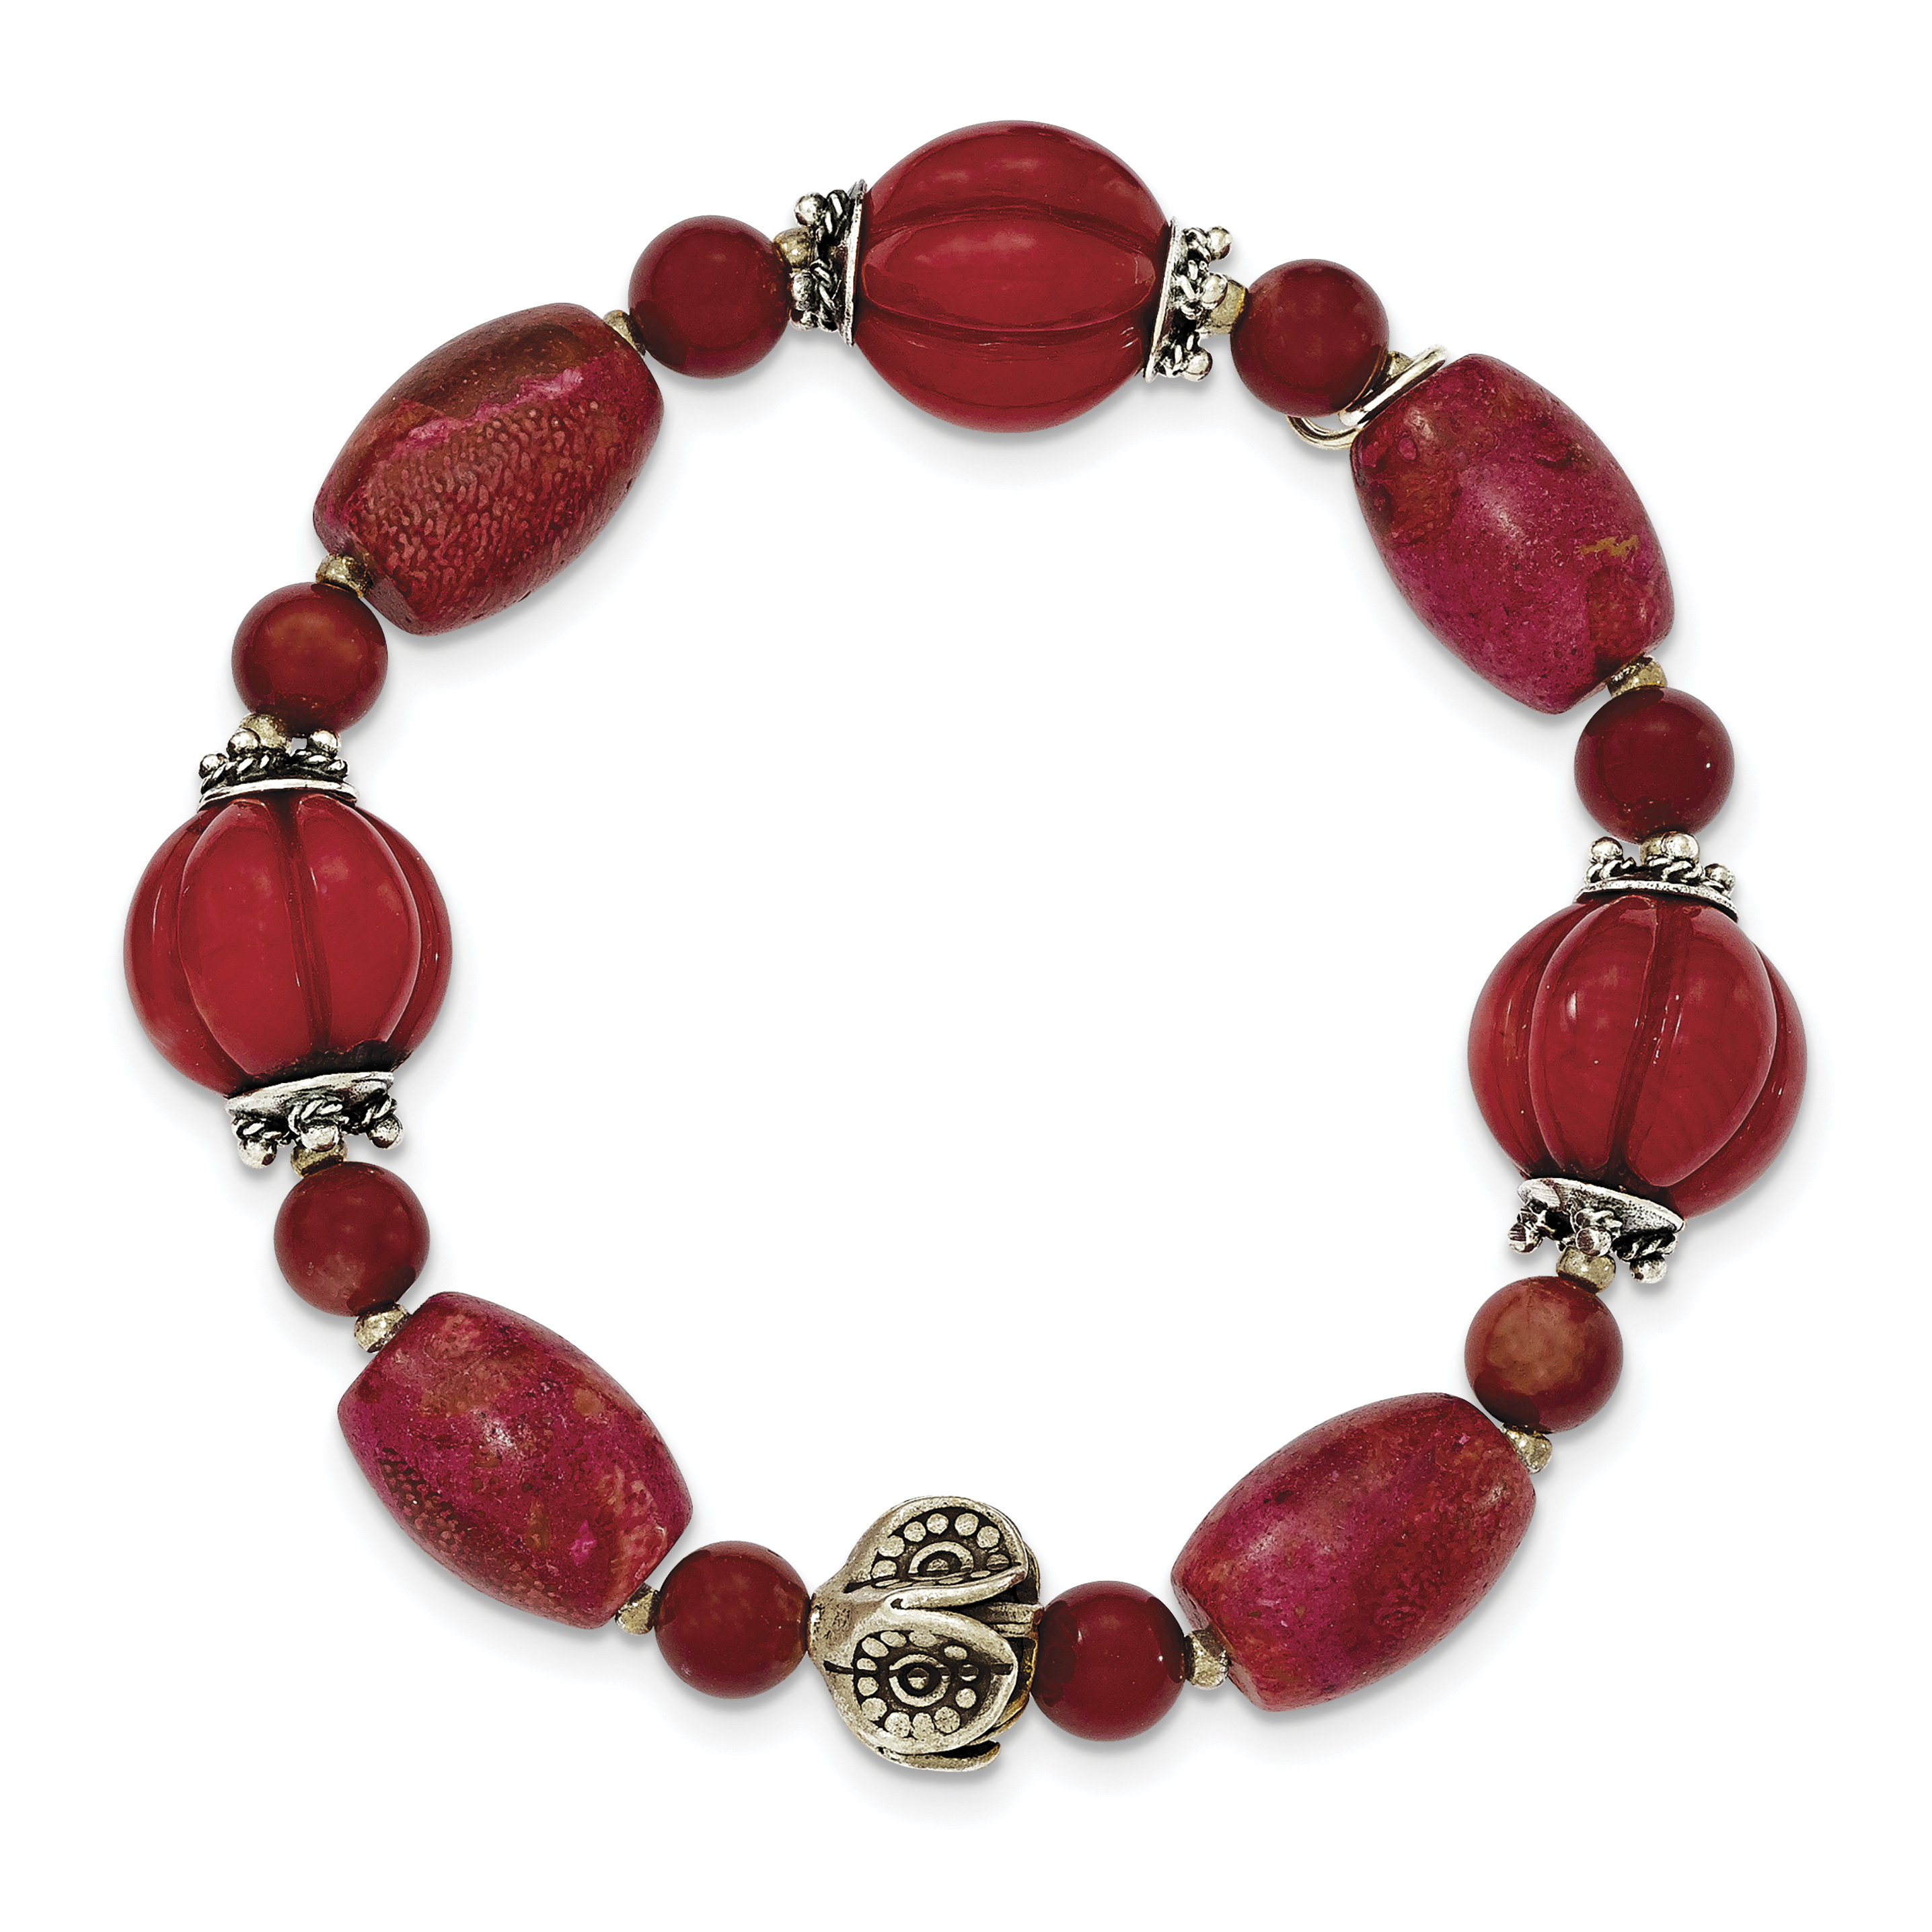 Roy Rose Jewelry Sterling Silver Antiqued Beads and Red Coral Stretch Bracelet by